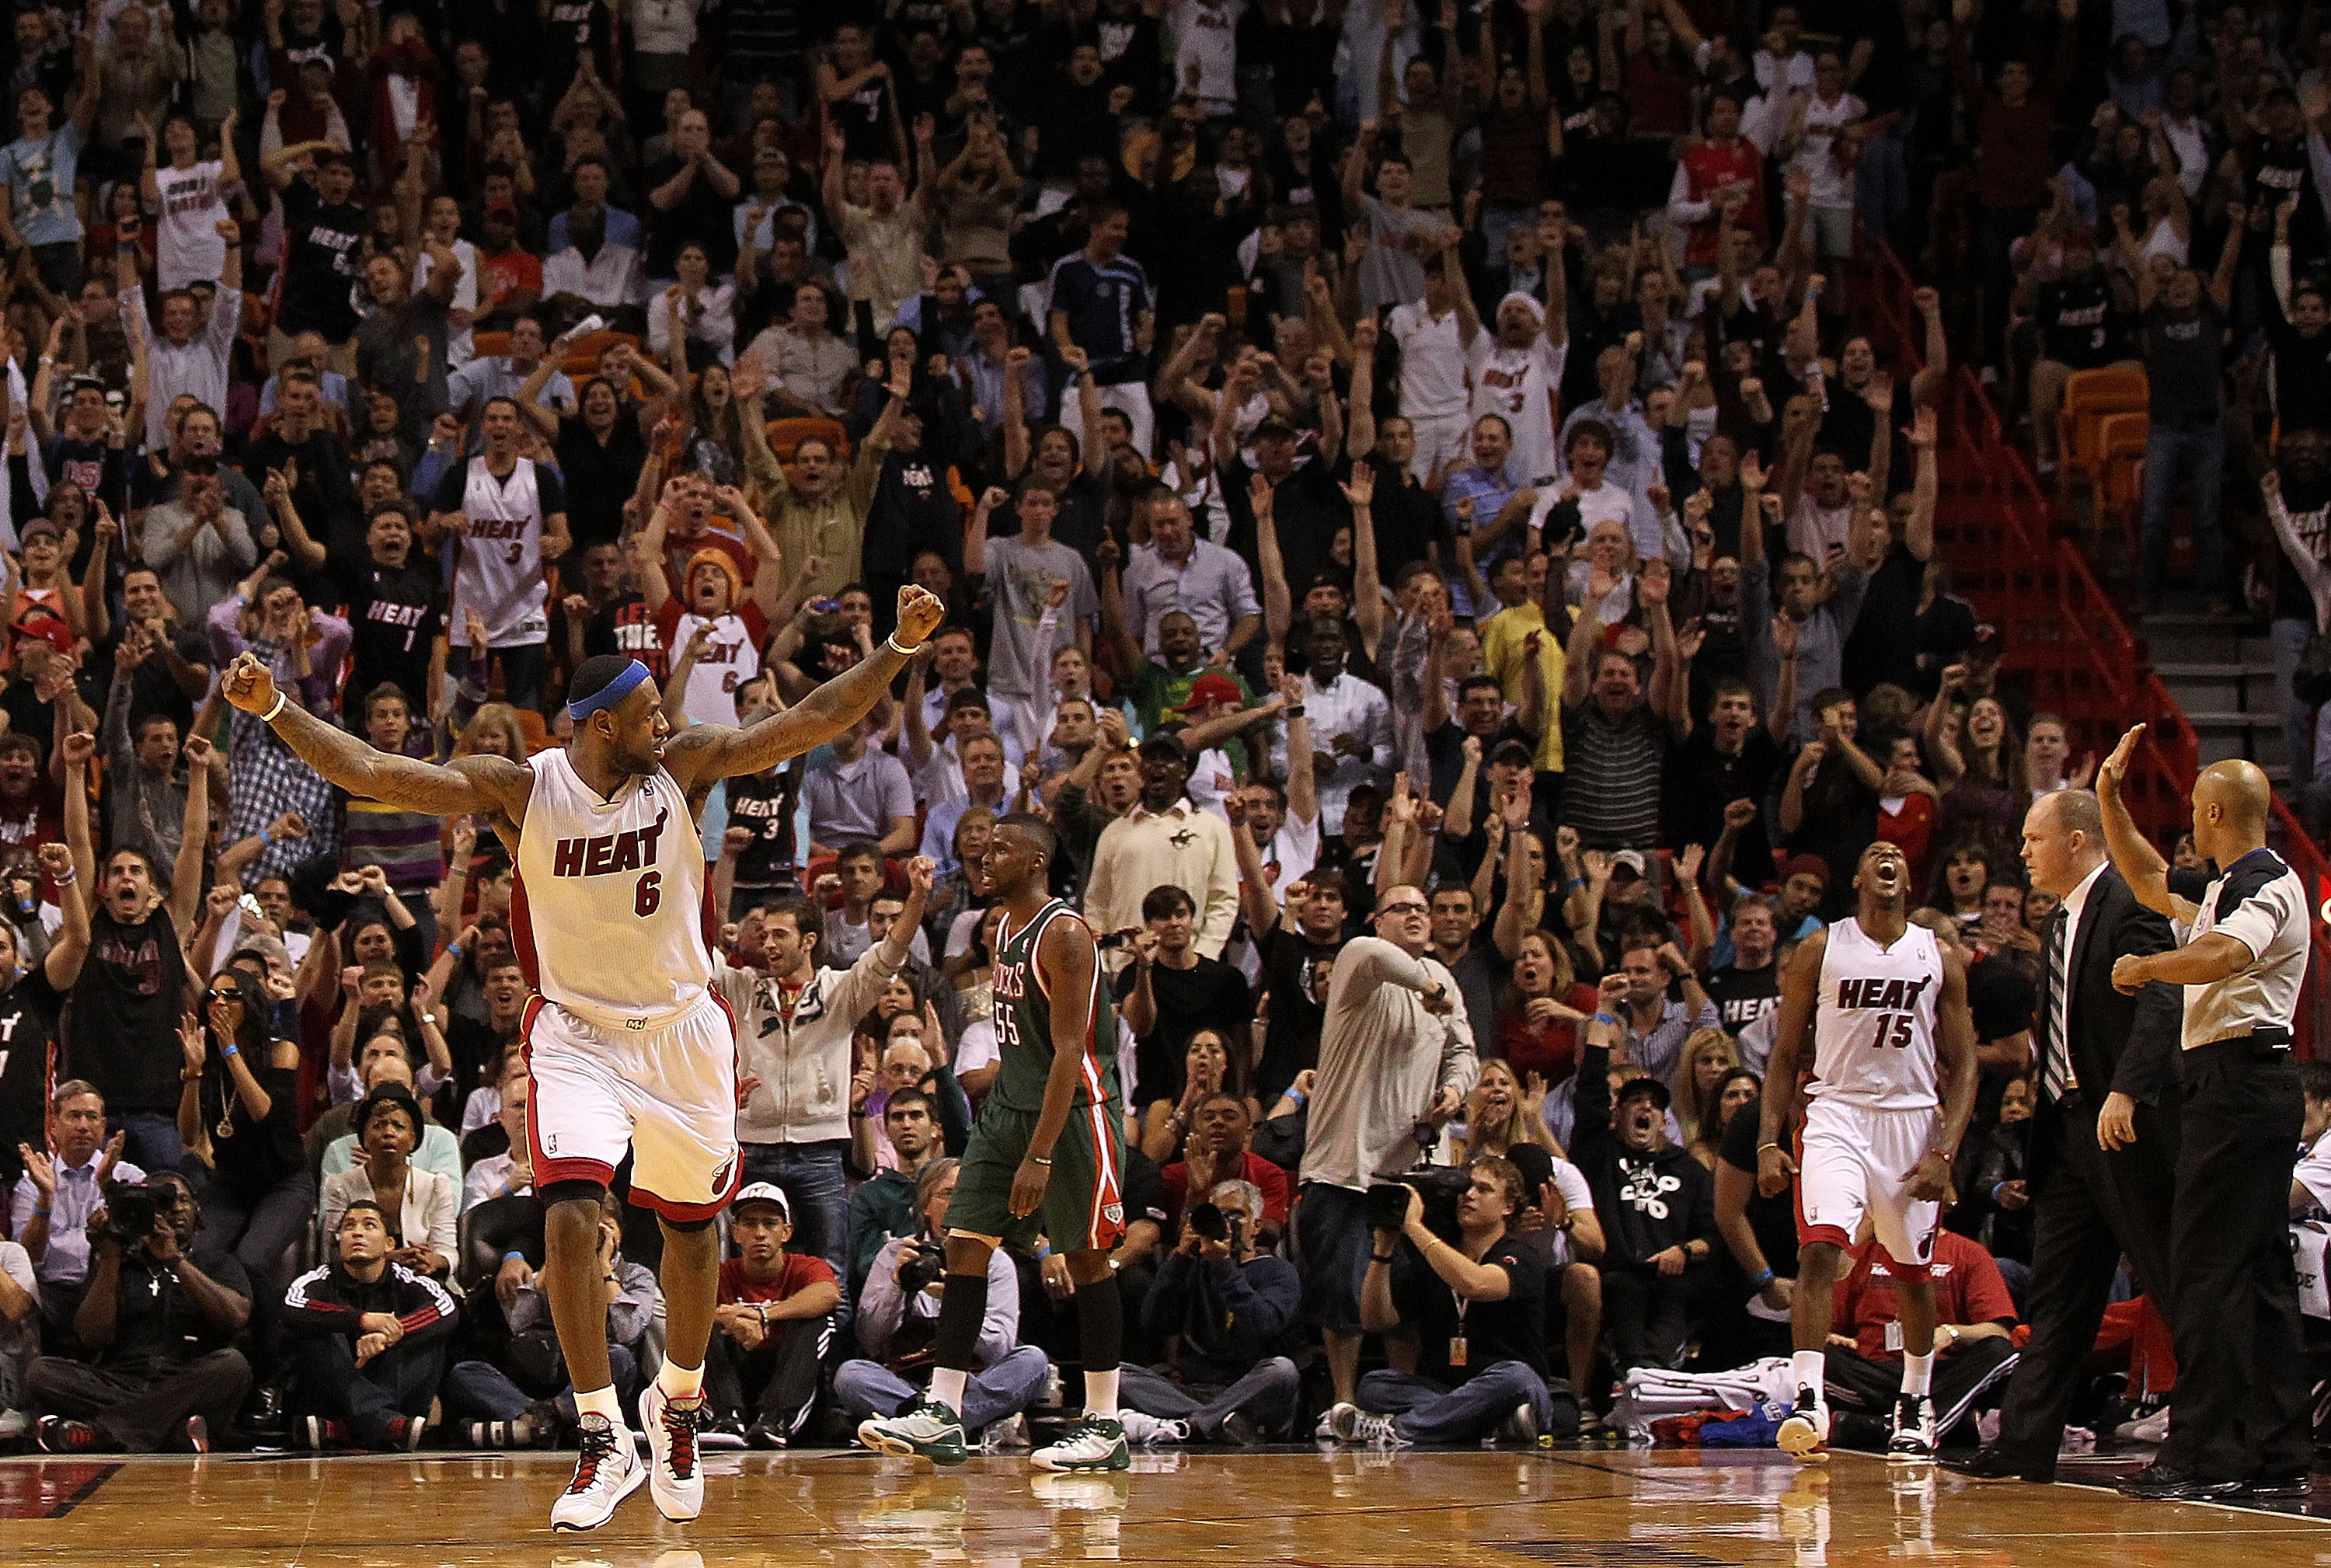 MIAMI, FL - JANUARY 04:  LeBron James #6 of the Miami Heat reacts after Mario Chalmers #15 hit a 3 pointer late in the game against the Milwaukee Bucks at American Airlines Arena on January 4, 2011 in Miami, Florida. NOTE TO USER: User expressly acknowled